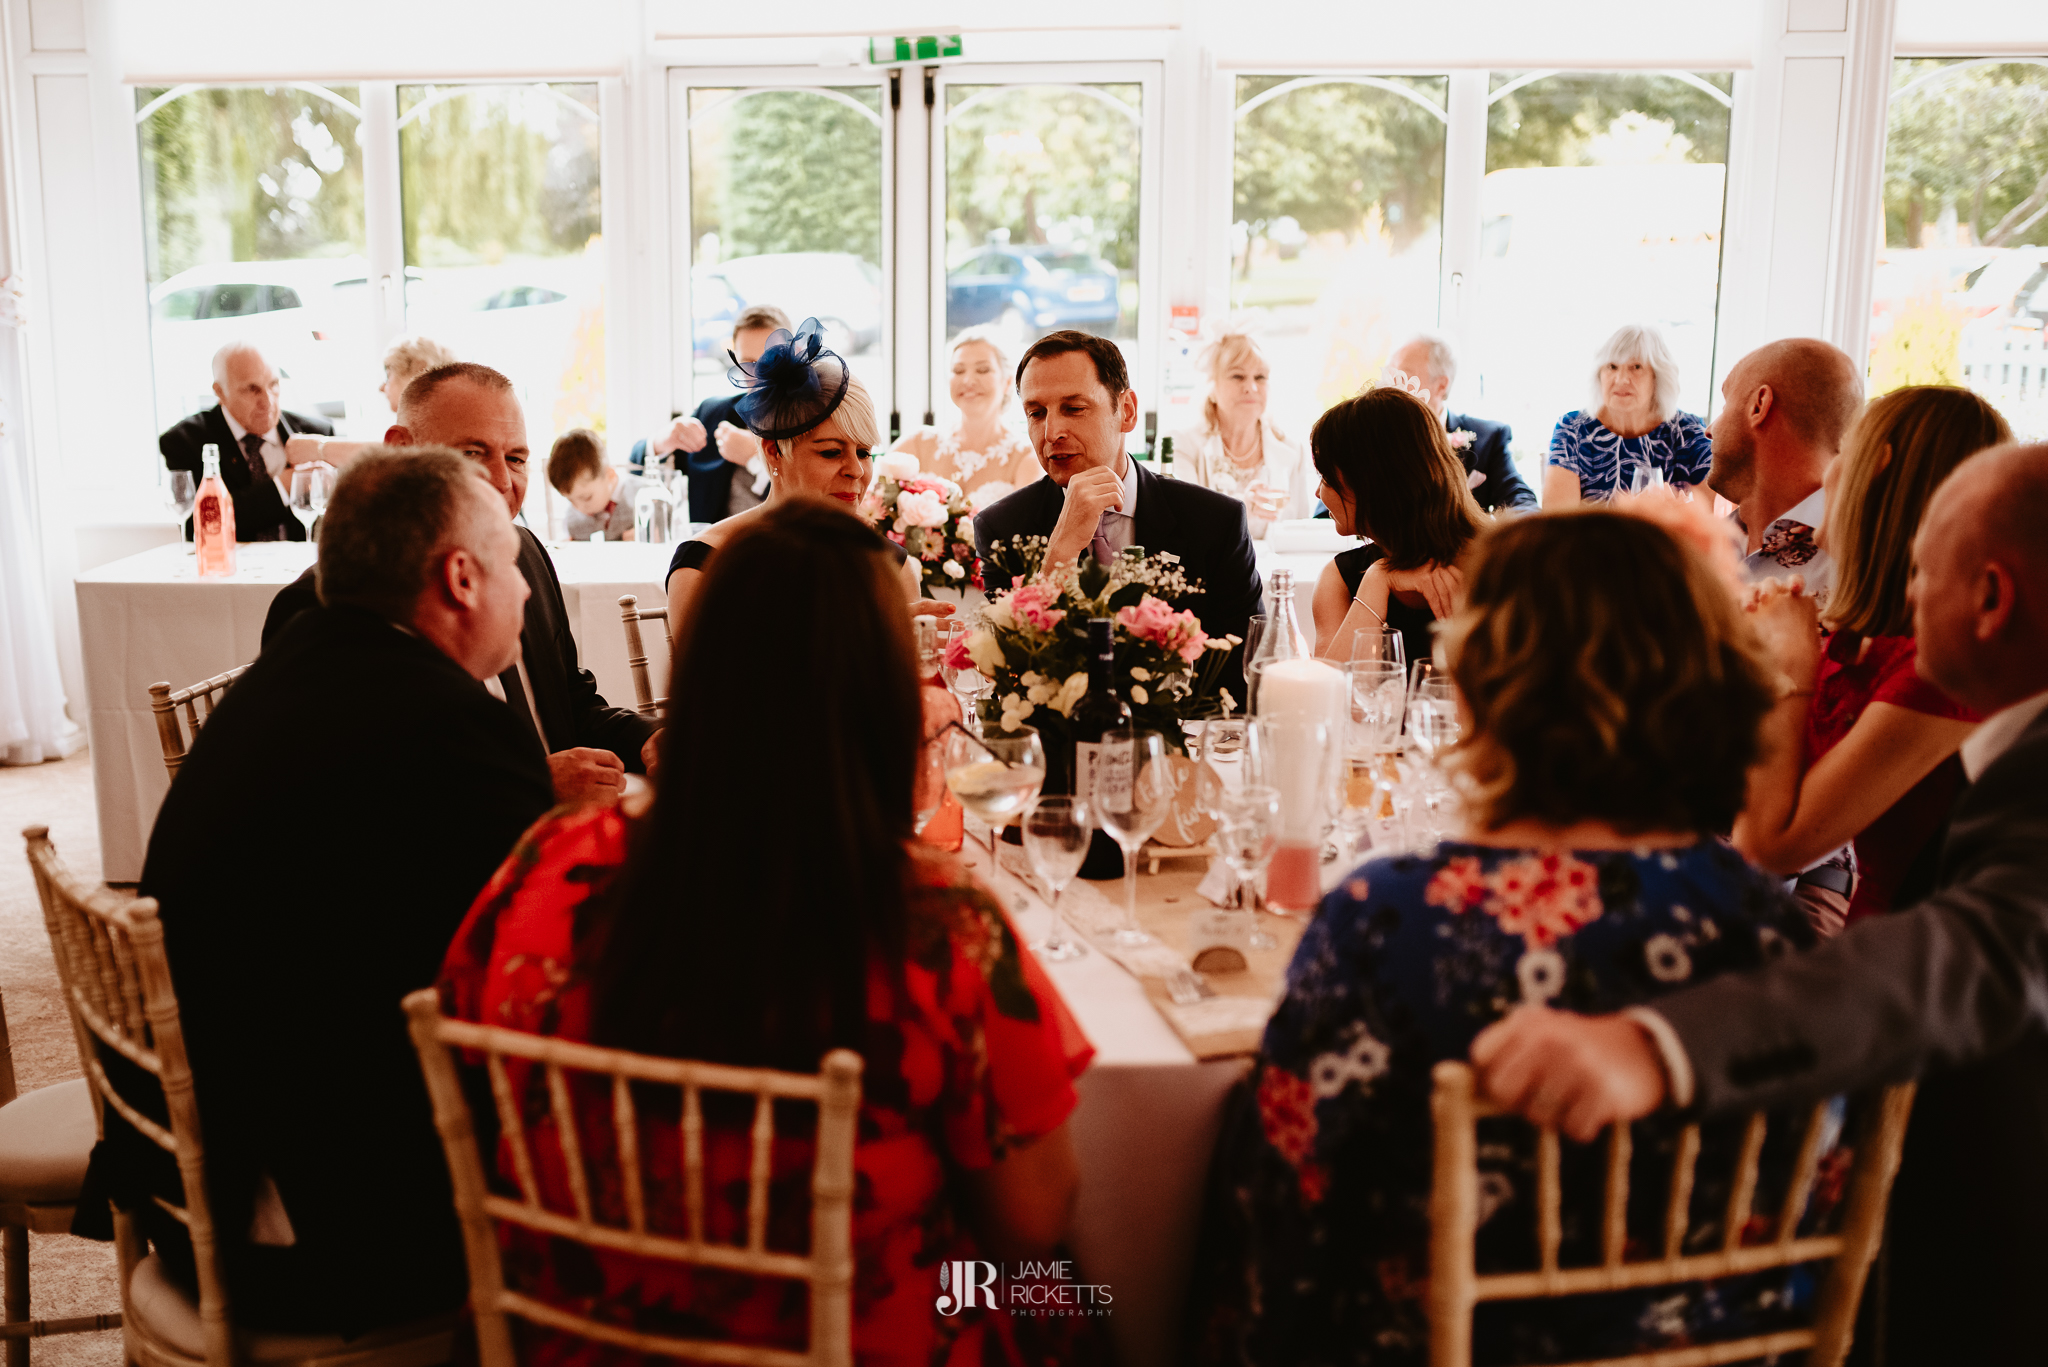 Wroxeter-Hotel-Wedding-Photography-In-Shropshire-By-Shropshire-Wedding-Photographer-Jamie-Ricketts-146.JPG